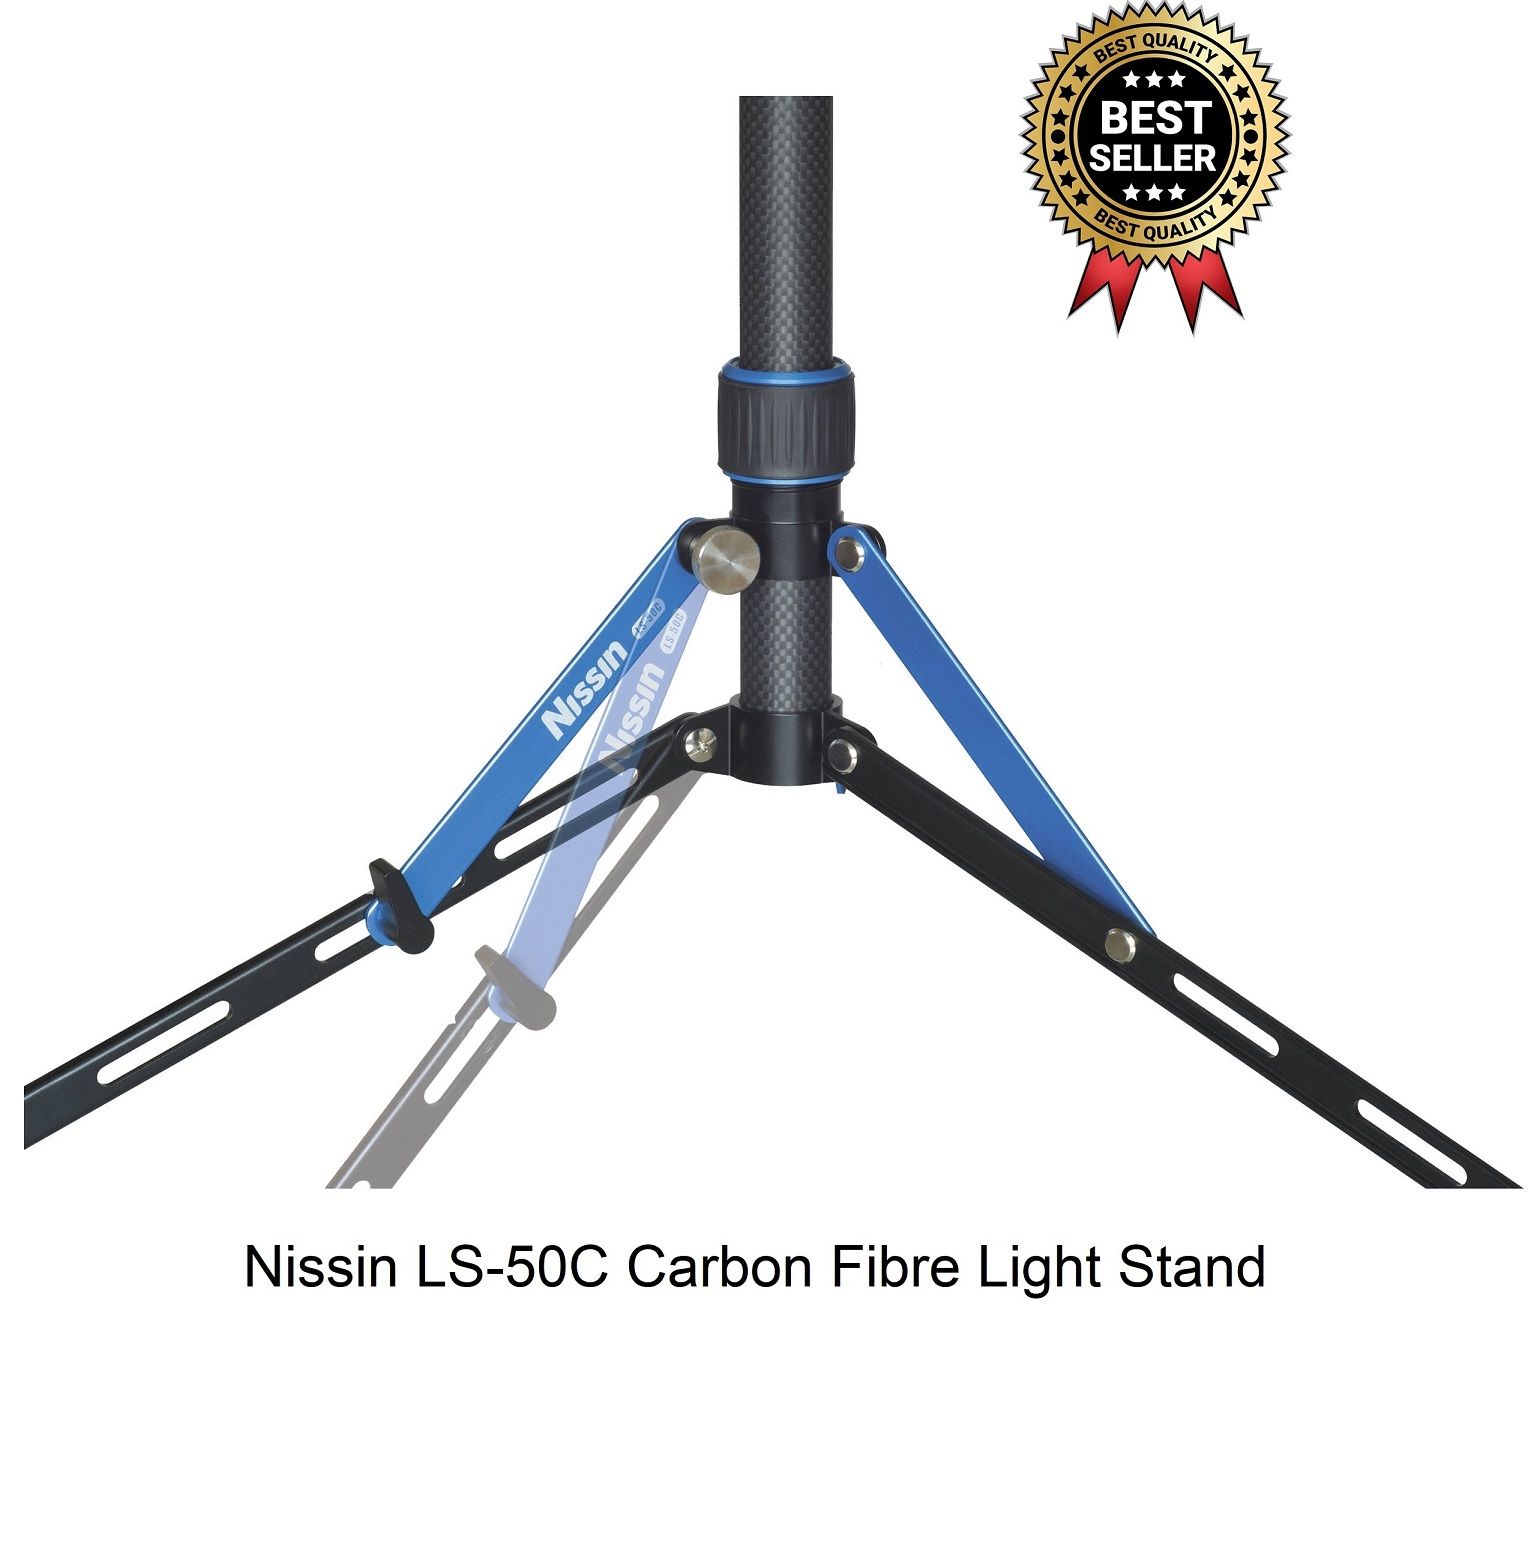 Nissin LS-50C Carbon Fibre Light Stand